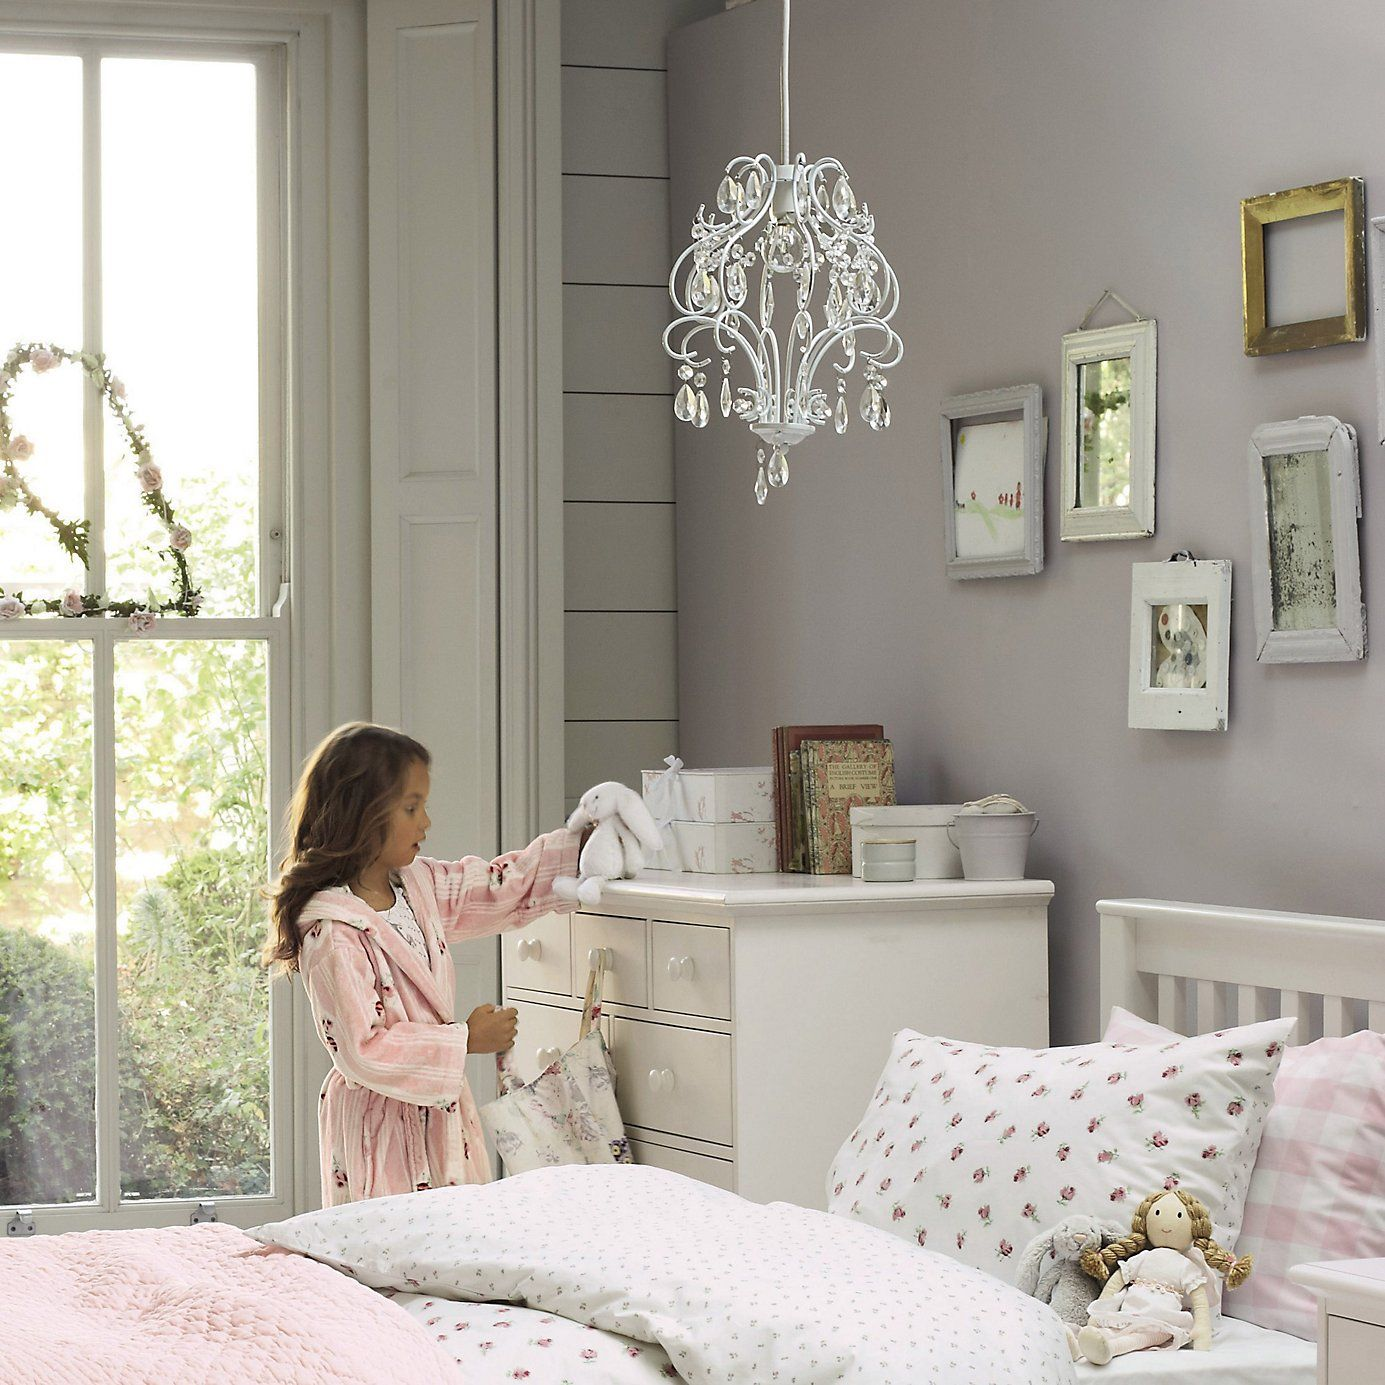 Chandelier ceiling light shade chandelier shades white company buy childrens bedroom bedroom accessories chandelier shade from the white company arubaitofo Gallery